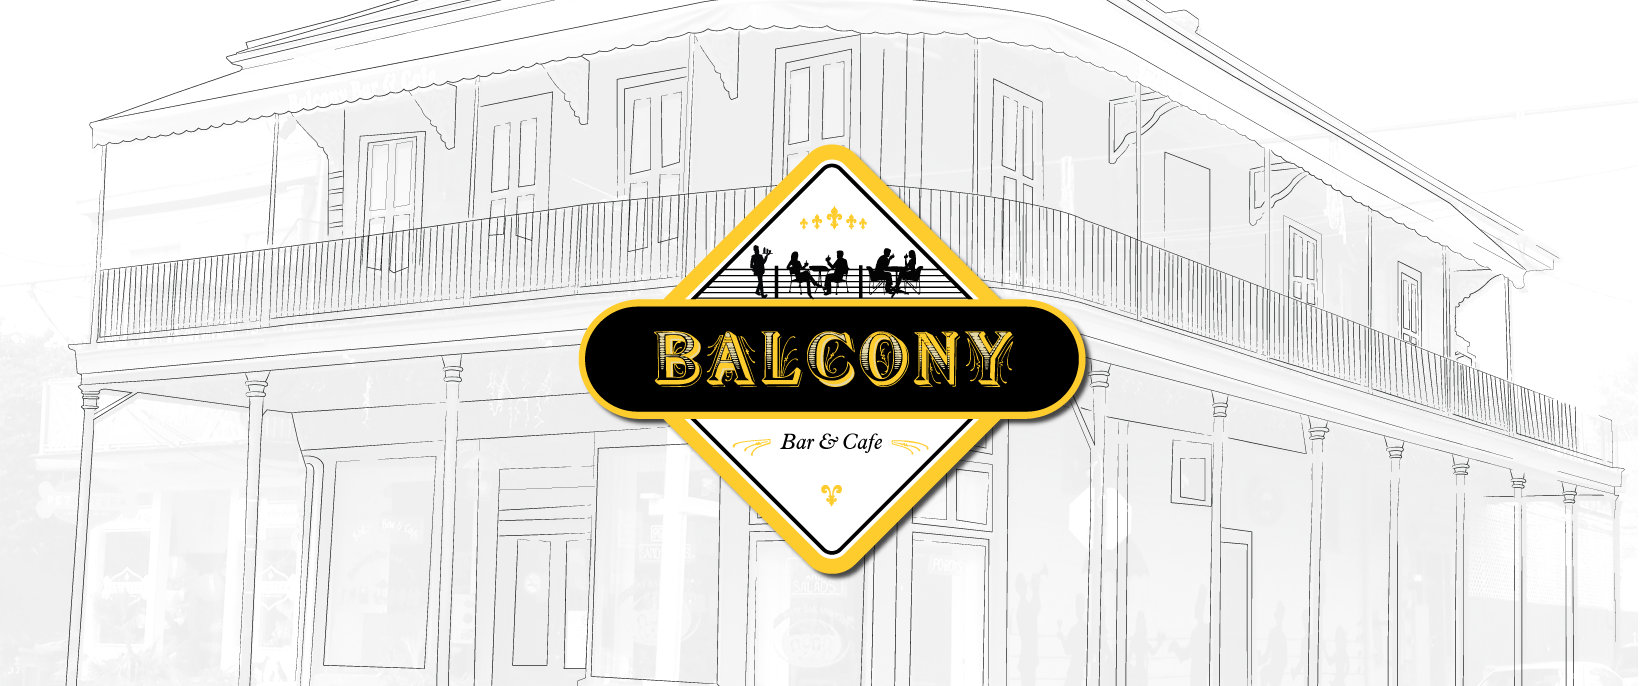 About Balcony Bar & Cafe and reviews